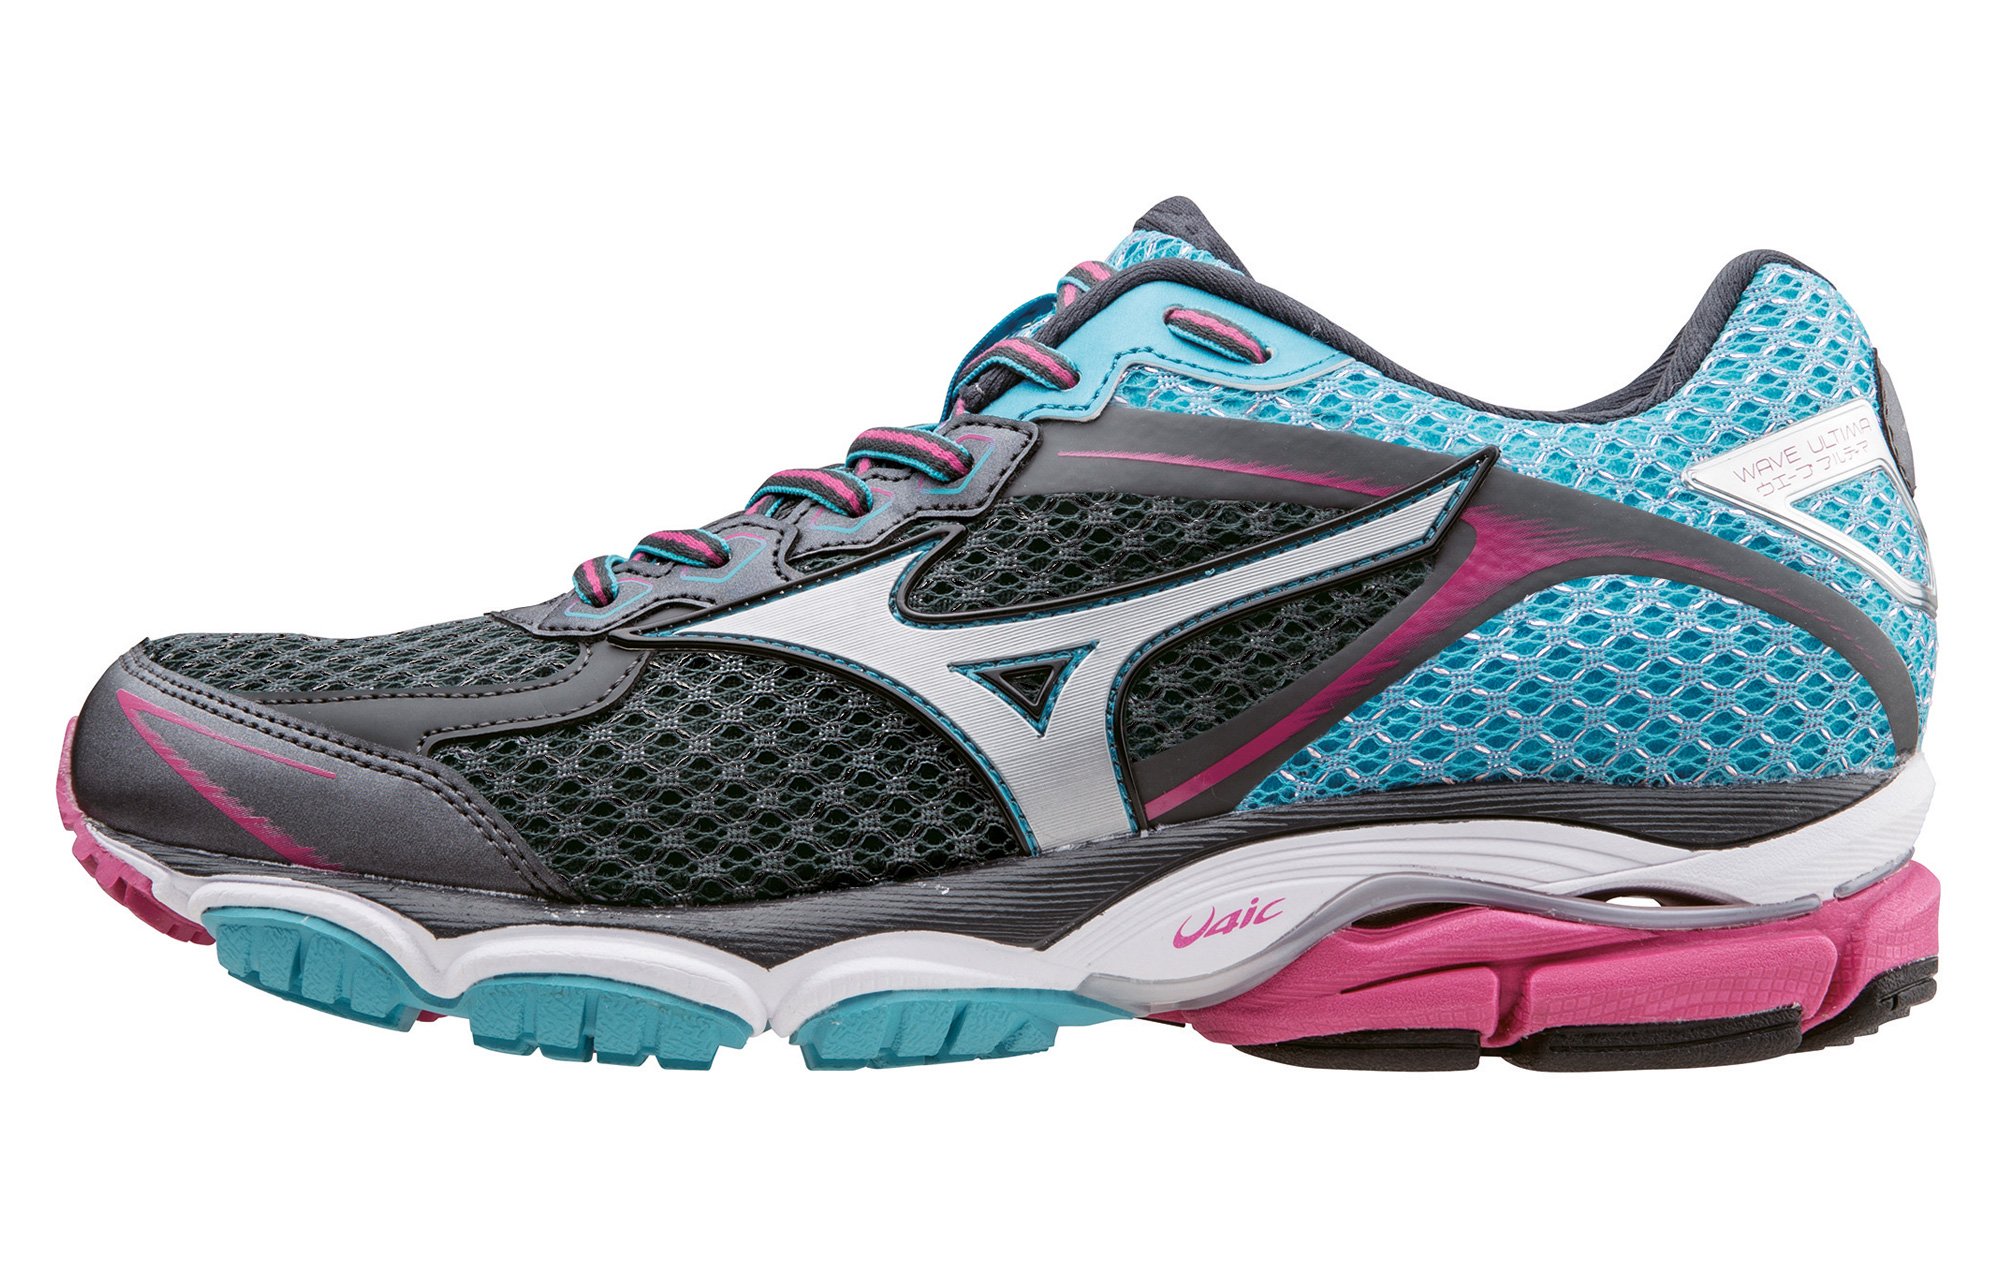 3c12eba2de76 MIZUNO Shoes WAVE ULTIMA 7 Black Blue Pink Women | Alltricks.com